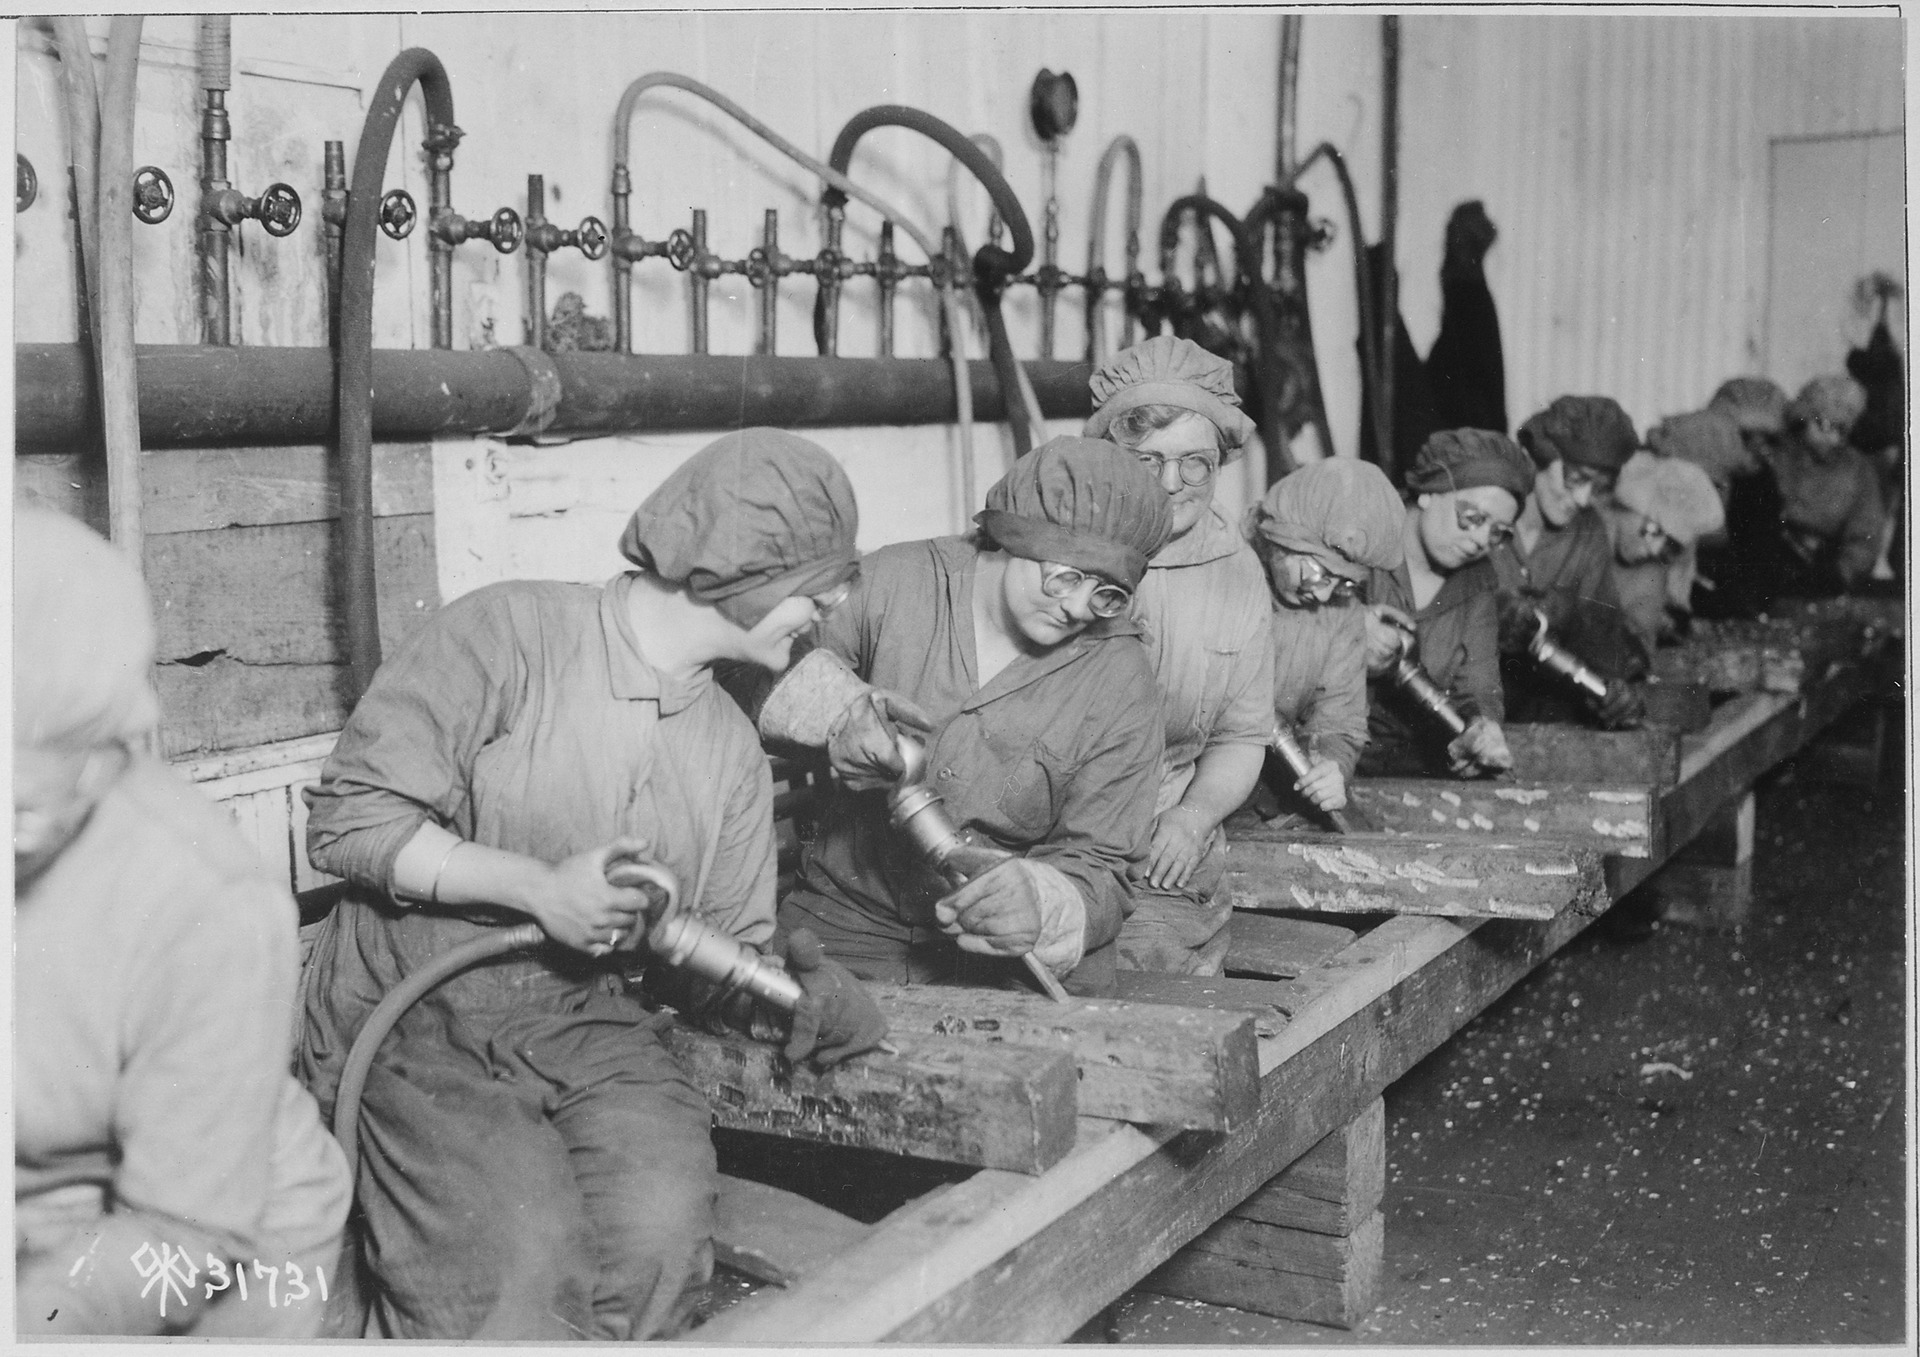 the employment of women in industry during the first world war essay The changing employment opportunities of women during the first world war in britain the first world war ended on the 11th of november 1918 four million british servicemen got ready to return to their homes and jobs.